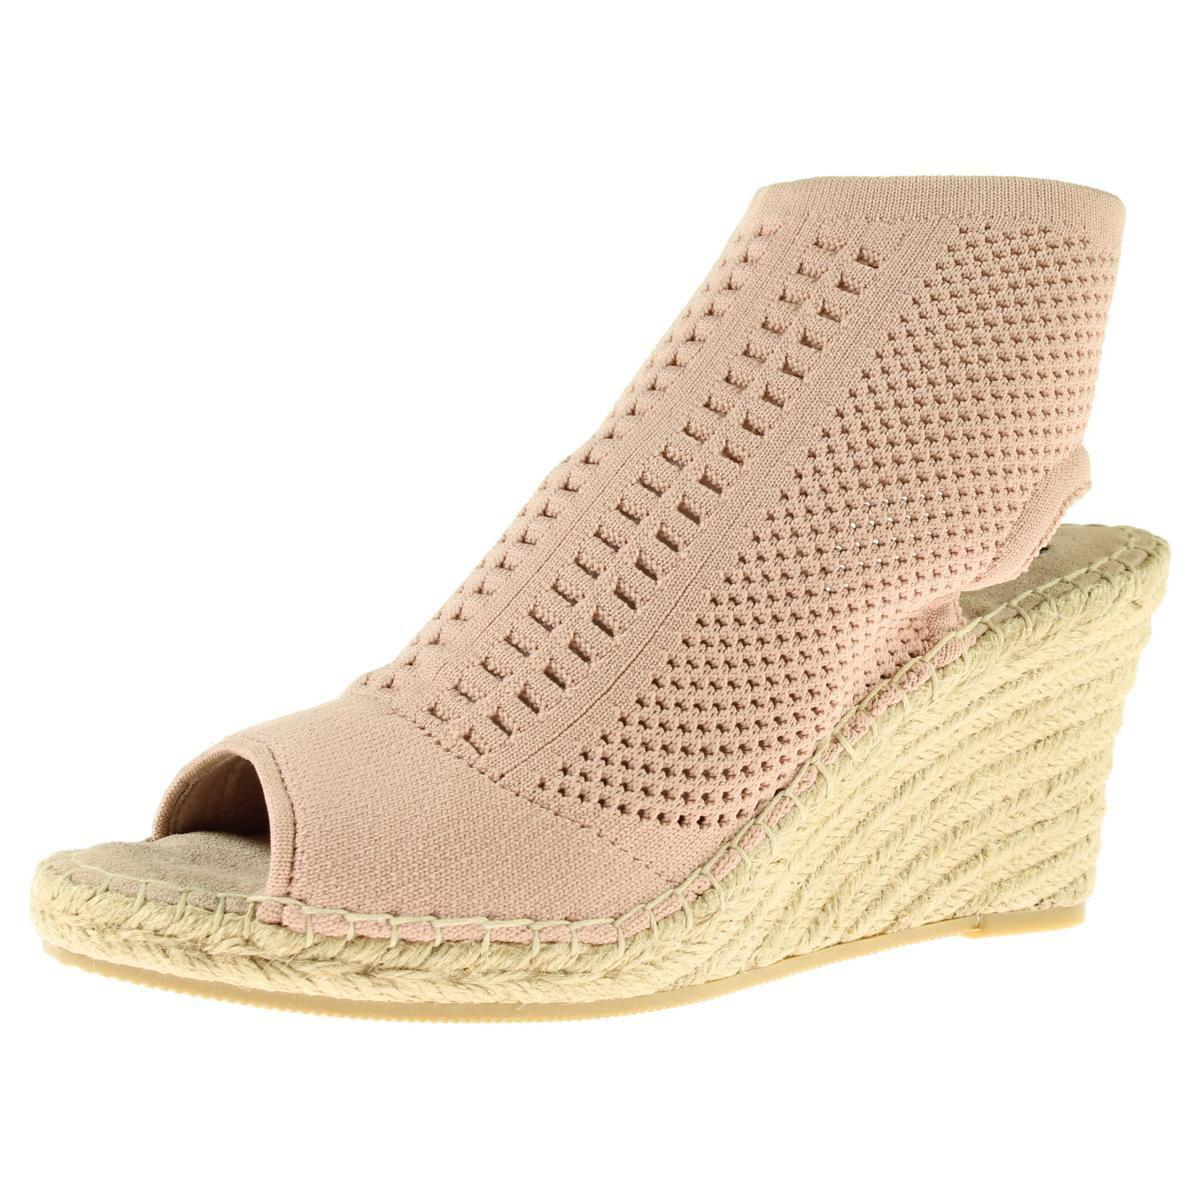 cc0b1bcec15 Lyst - Steven By Steve Madden Womens Evers Open Toe Perforated Wedge ...